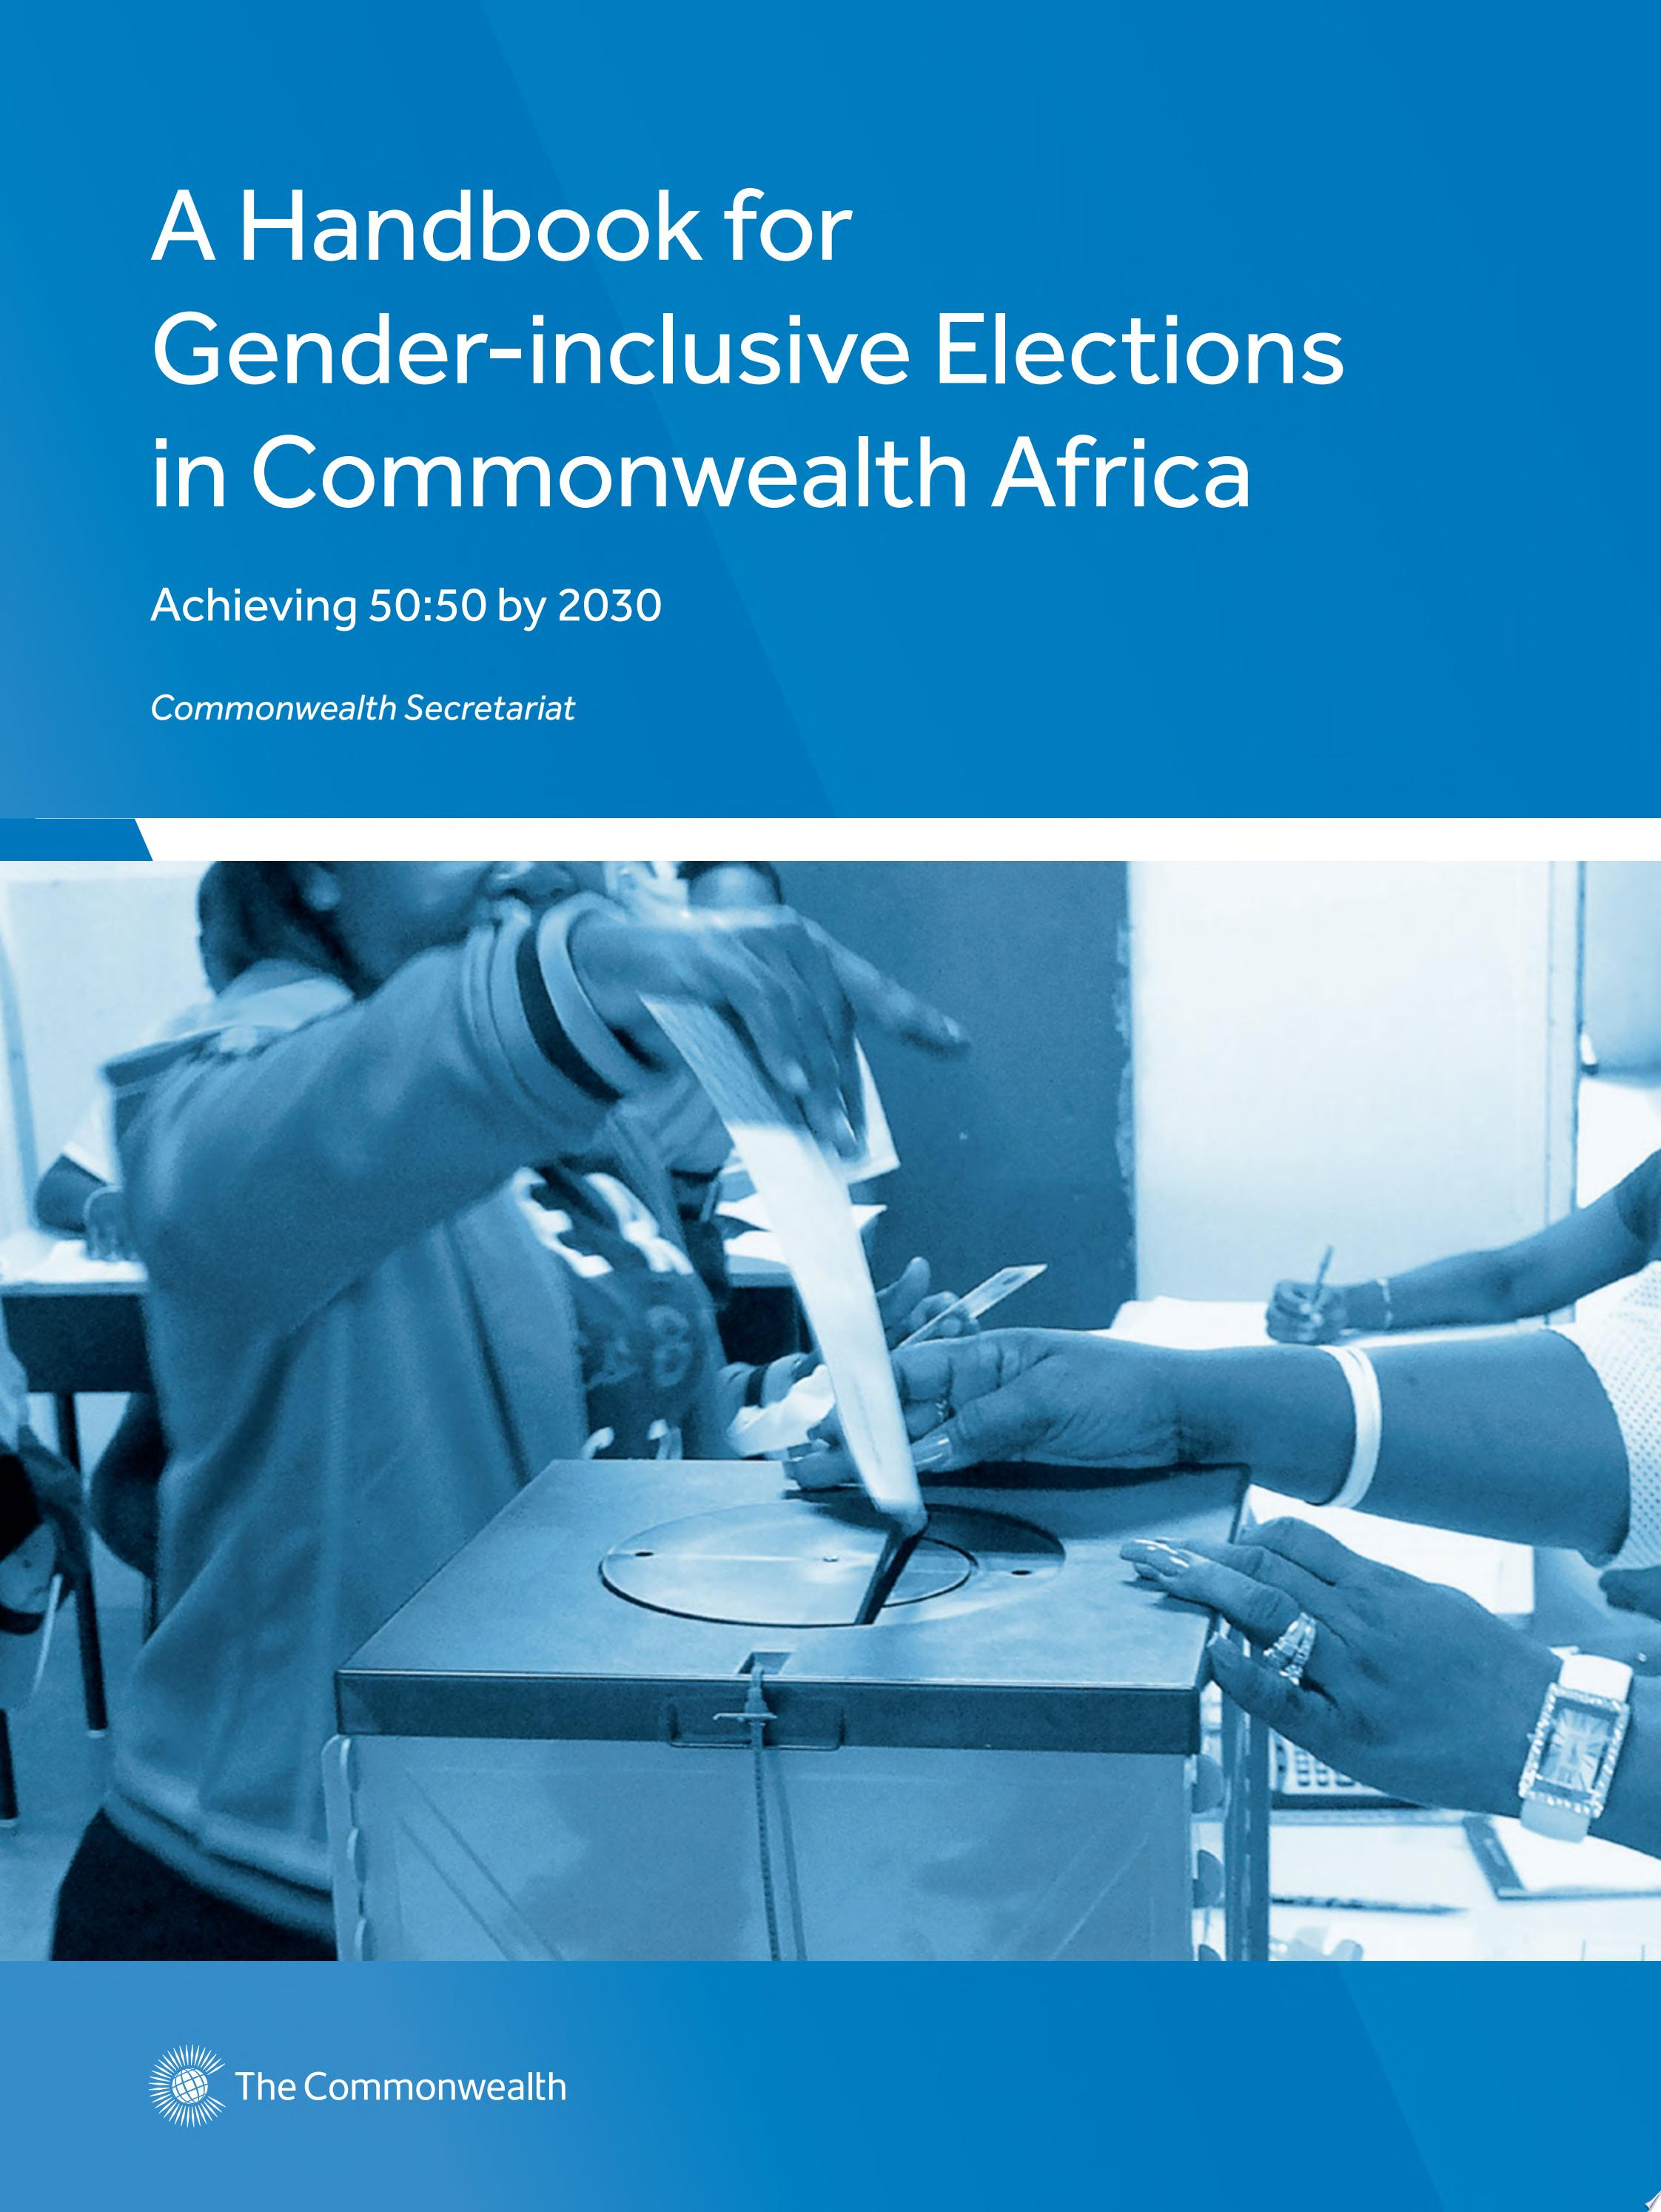 A Handbook for Gender Inclusive Elections in Commonwealth Africa